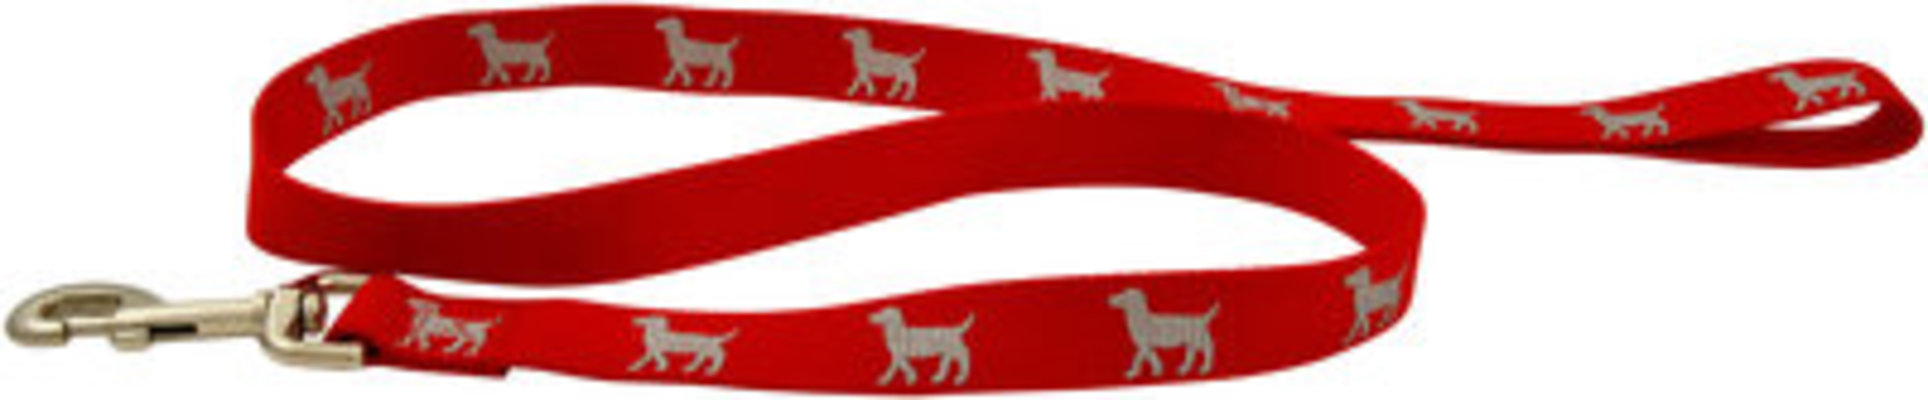 "Reflective Hound Series Leash, 1"" x 4'"